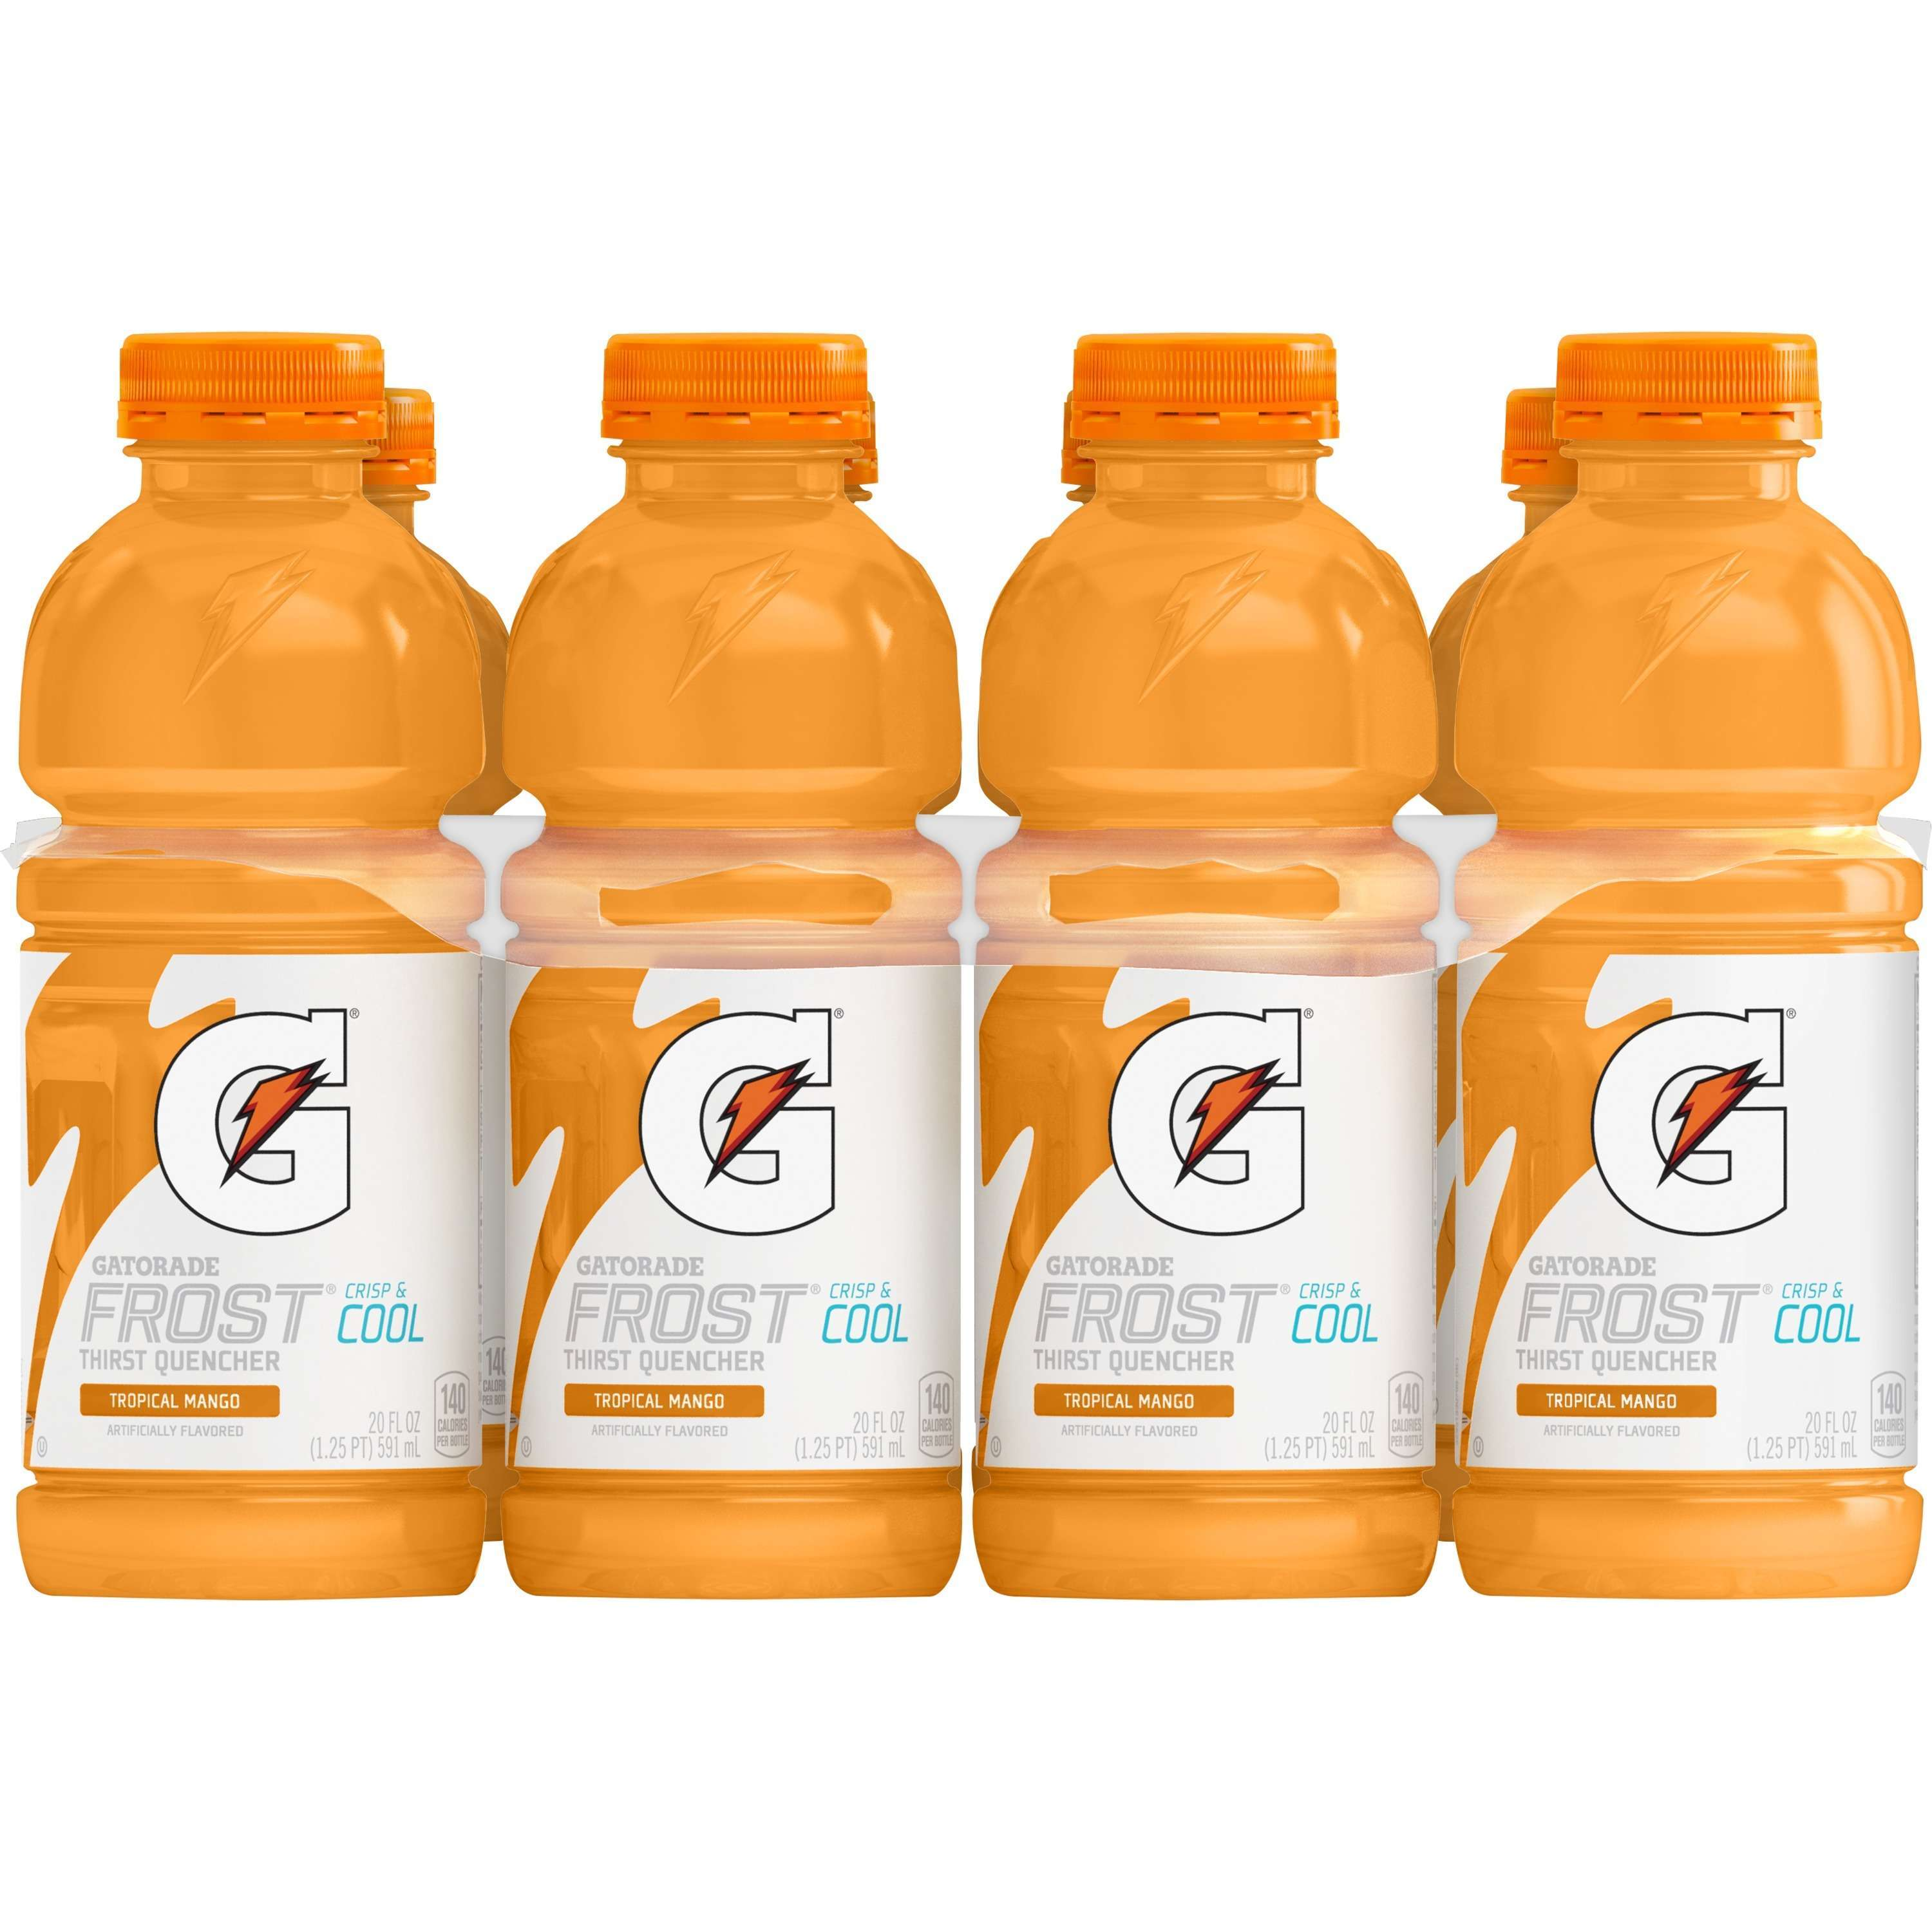 Gatorade Thirst Quencher Frost Tropical Mango Sports Drink, 8 Count, 20 fl oz Bottles